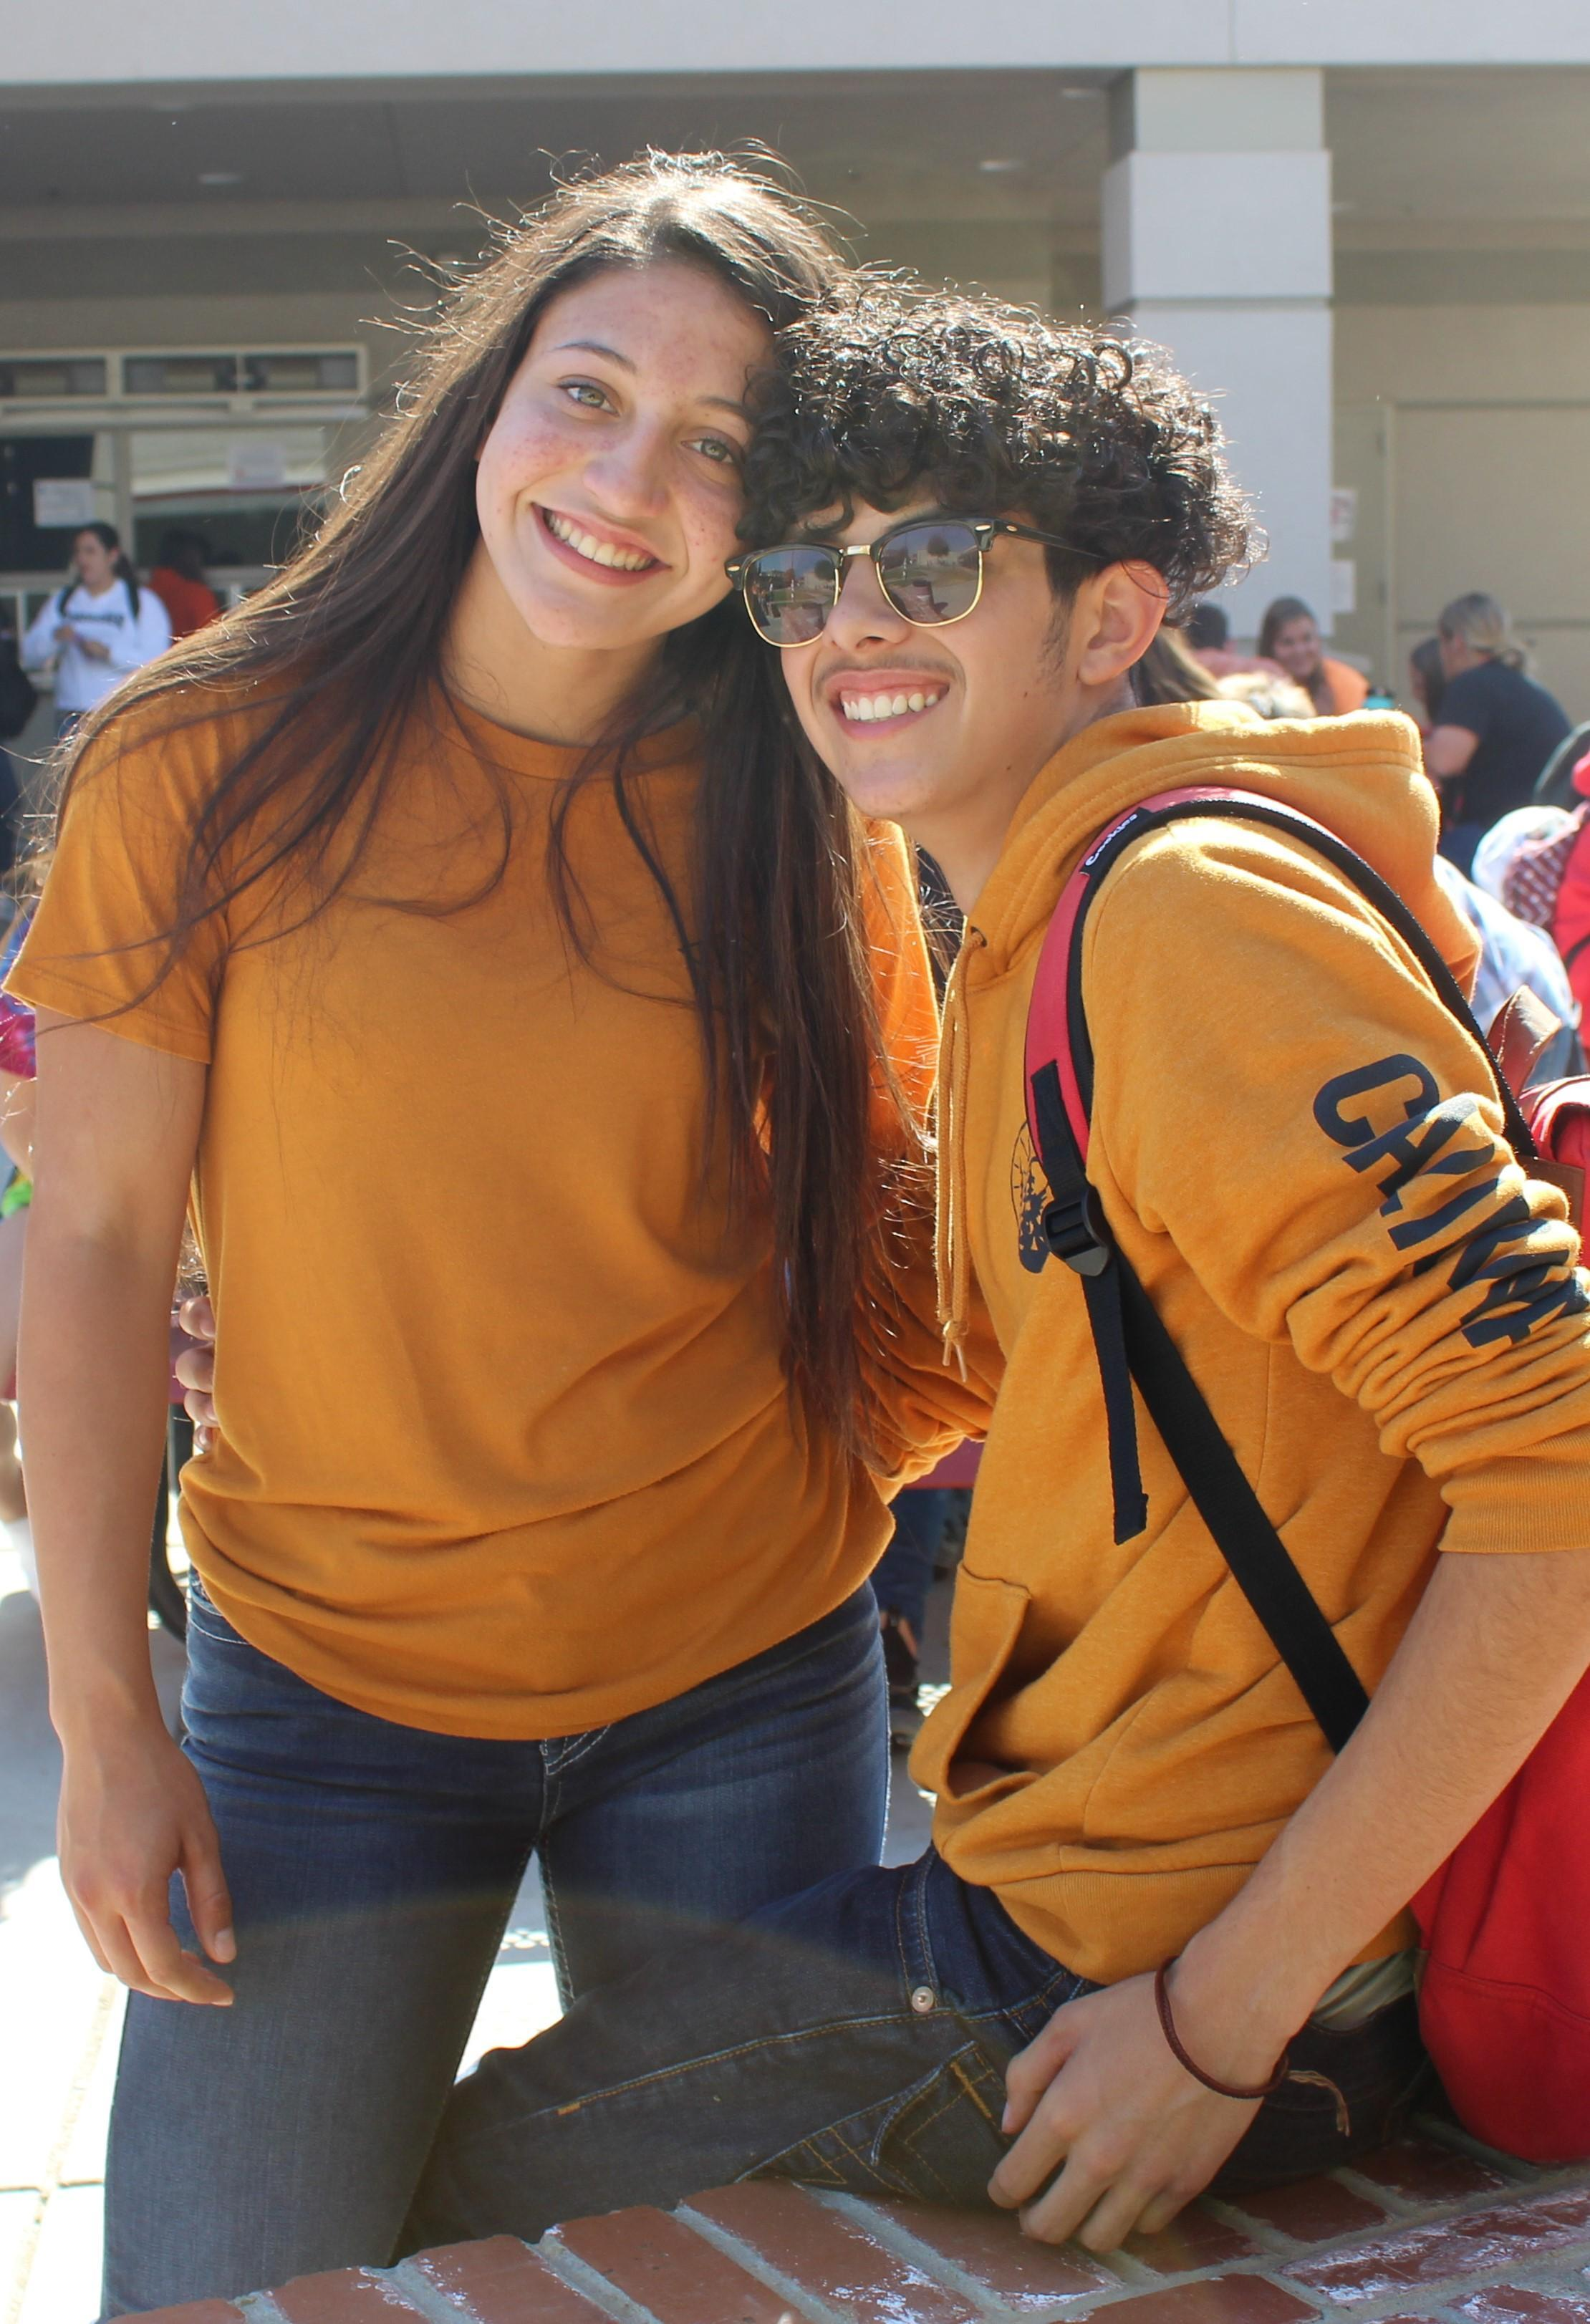 Students and staff wearing orange clothing to support awareness of Leukemia.